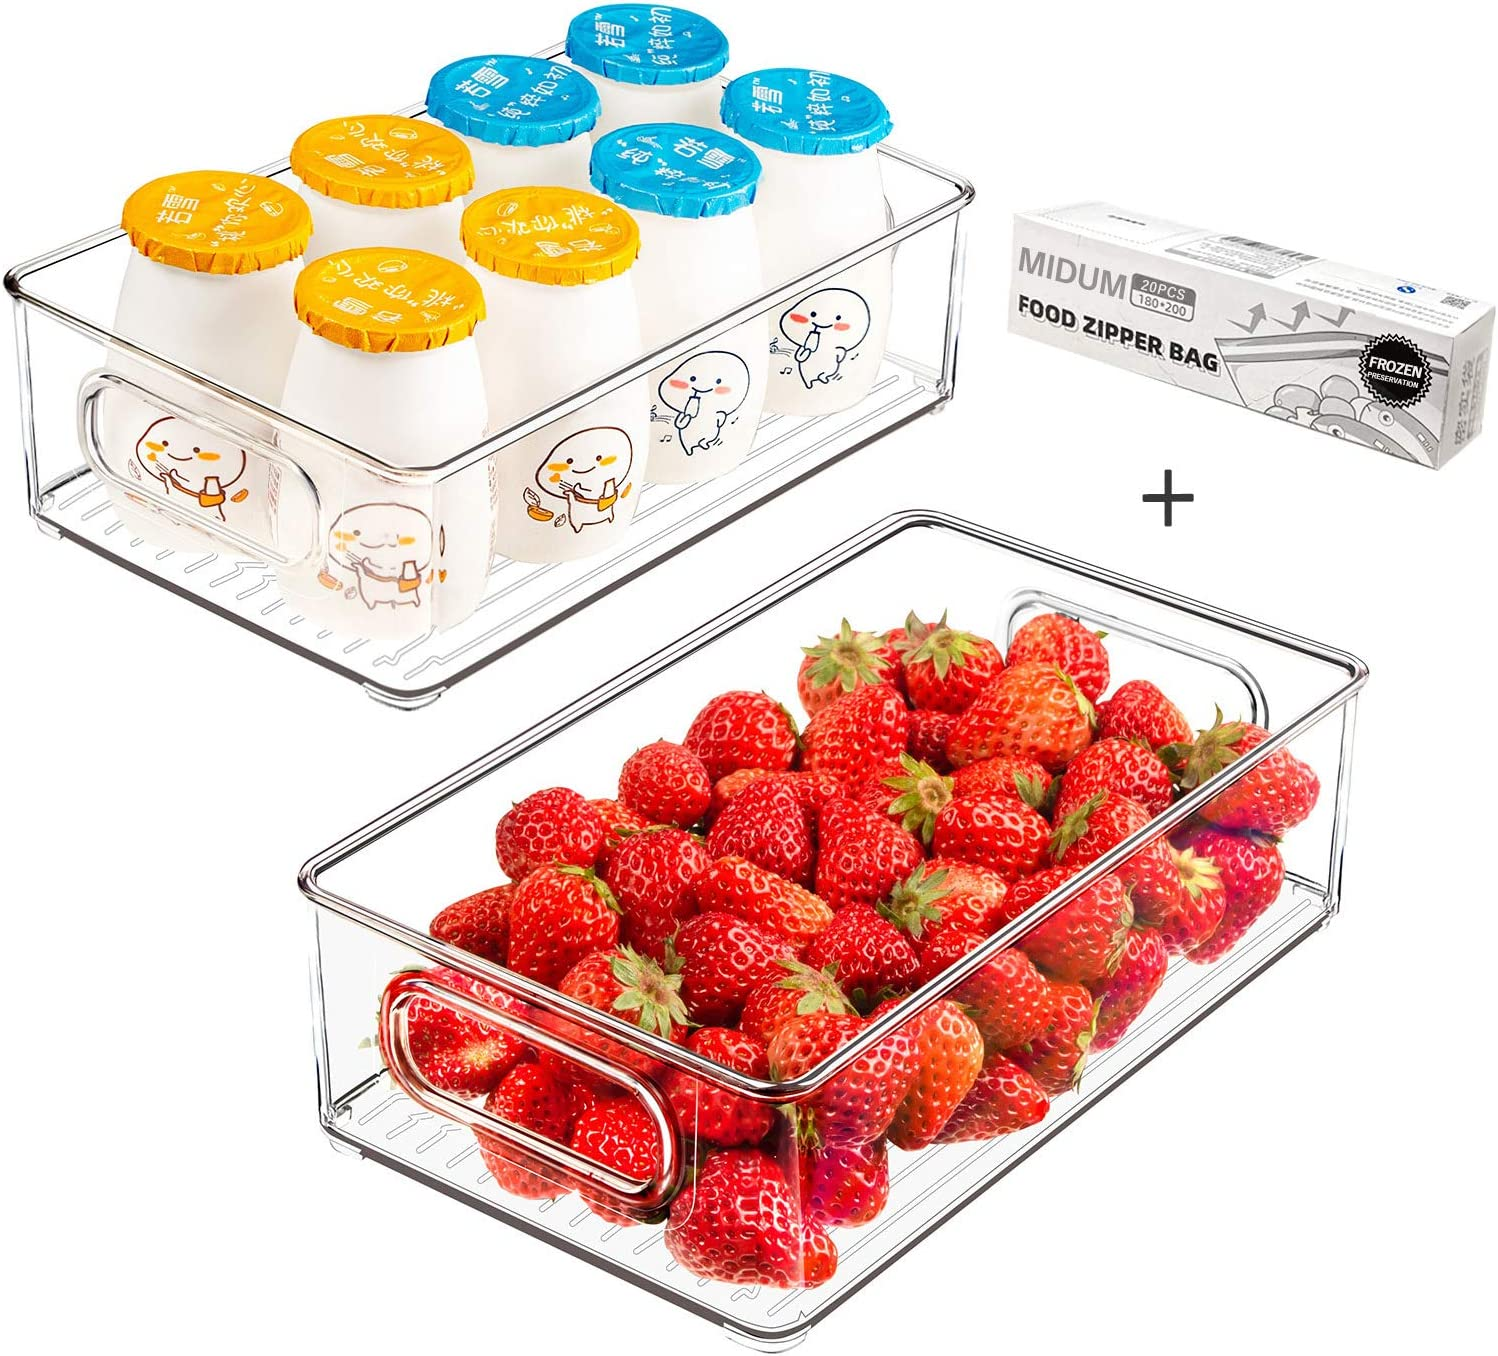 Refrigerator Organizer Bins, 2pcs Clear Plastic Stackable Fridge Containers with Handles for Freezer, Cabinet, Fridge, Kitchen Pantry Organization and Storage, BPA Free, 10